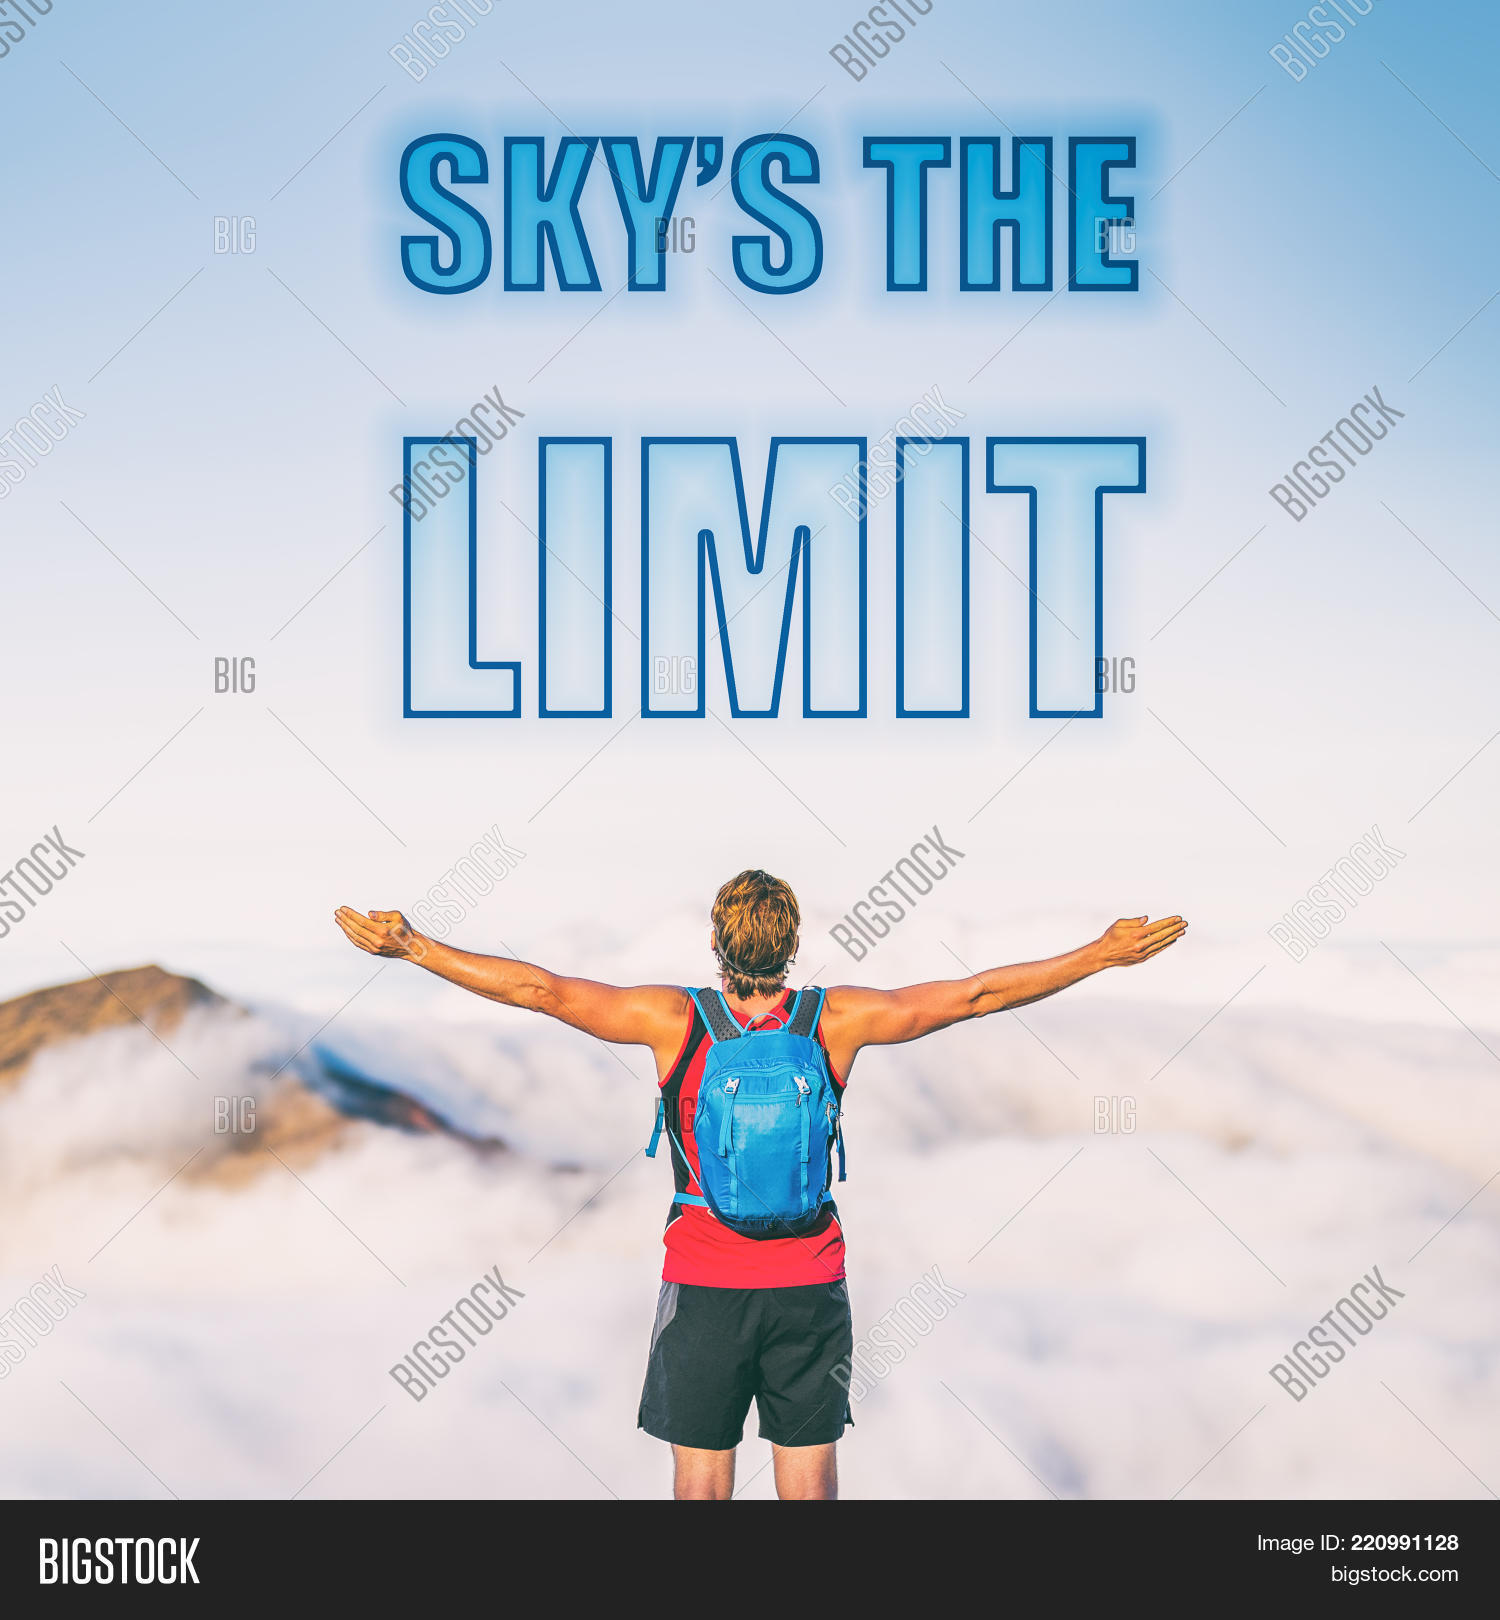 Skys Limit Motivation Image Photo Free Trial Bigstock